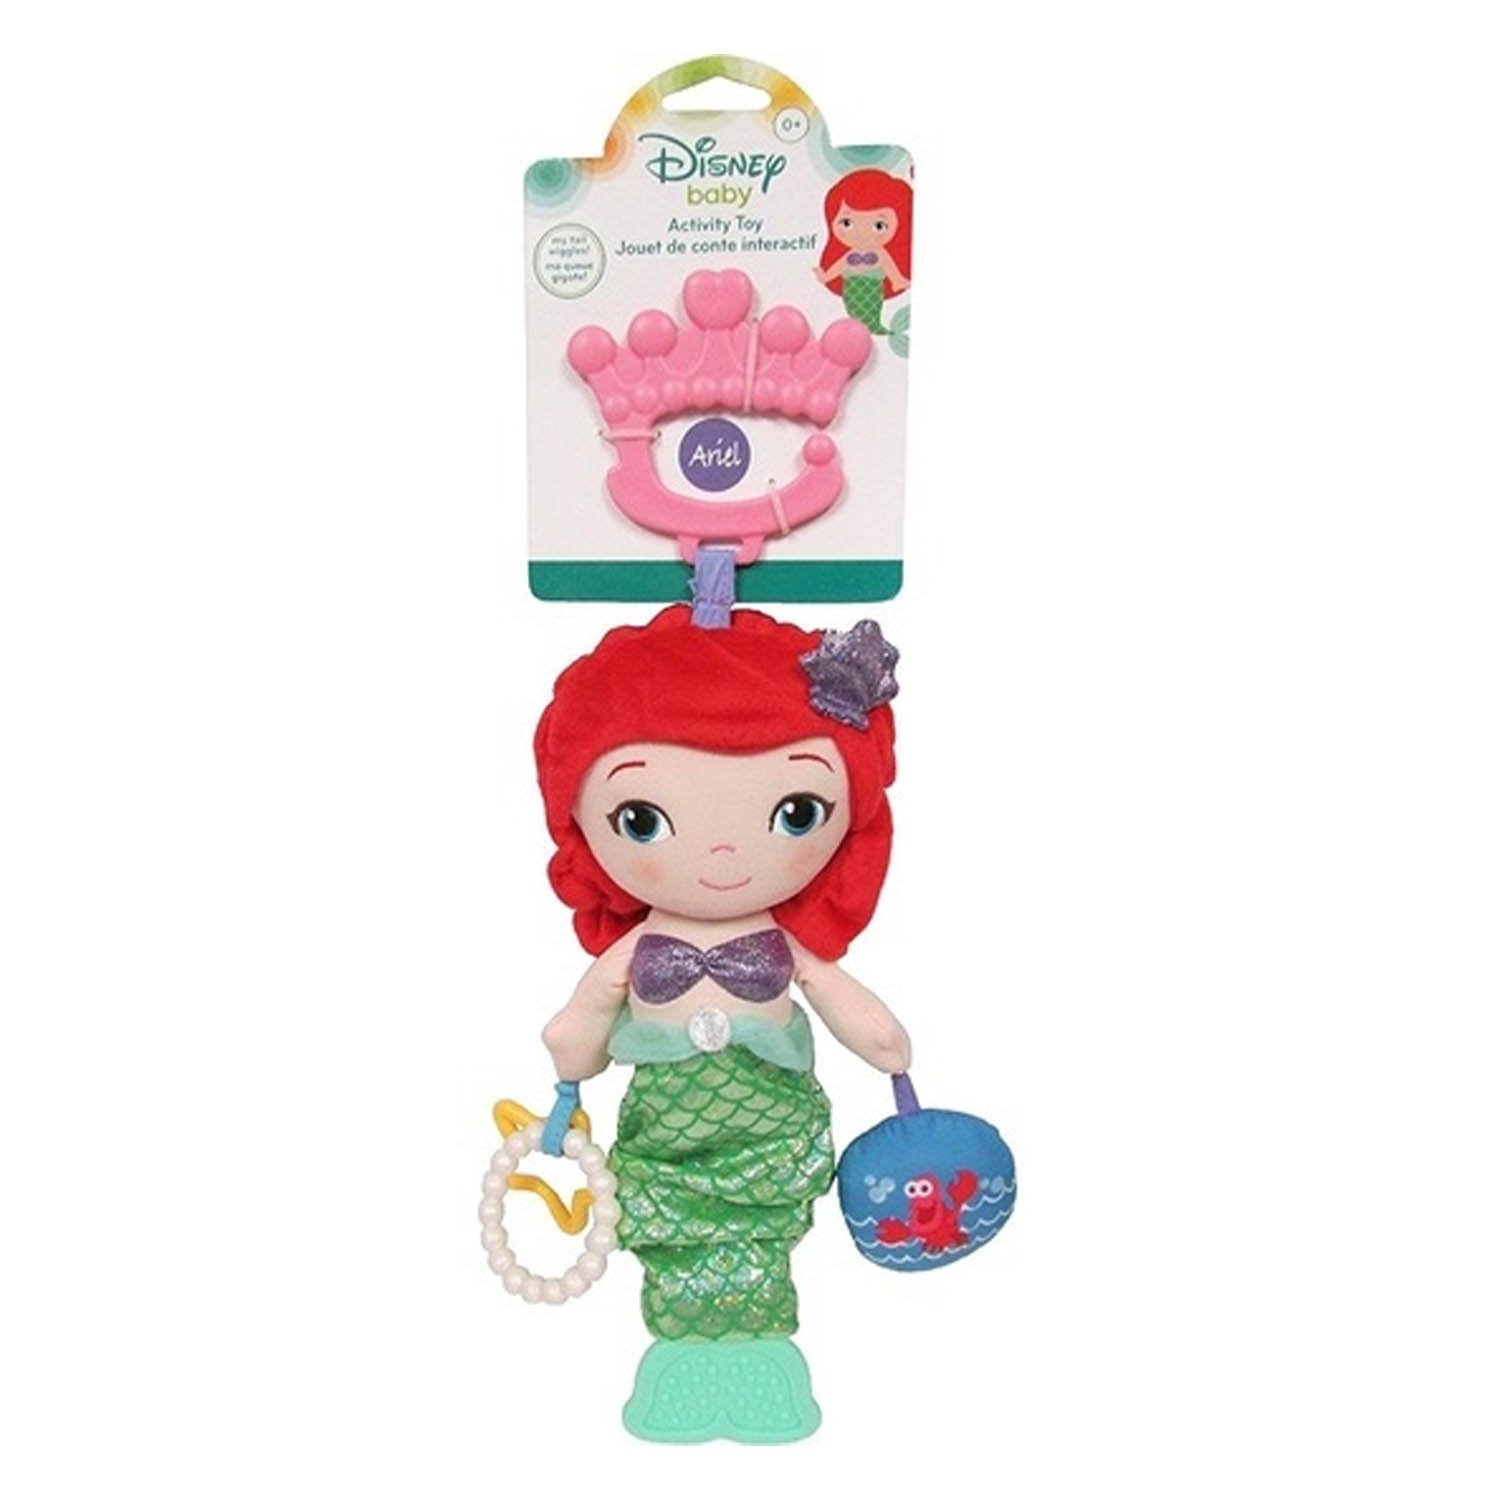 Disney Baby The Little Mermaid Ariel Plush Baby Activity Toy - Click Image to Close